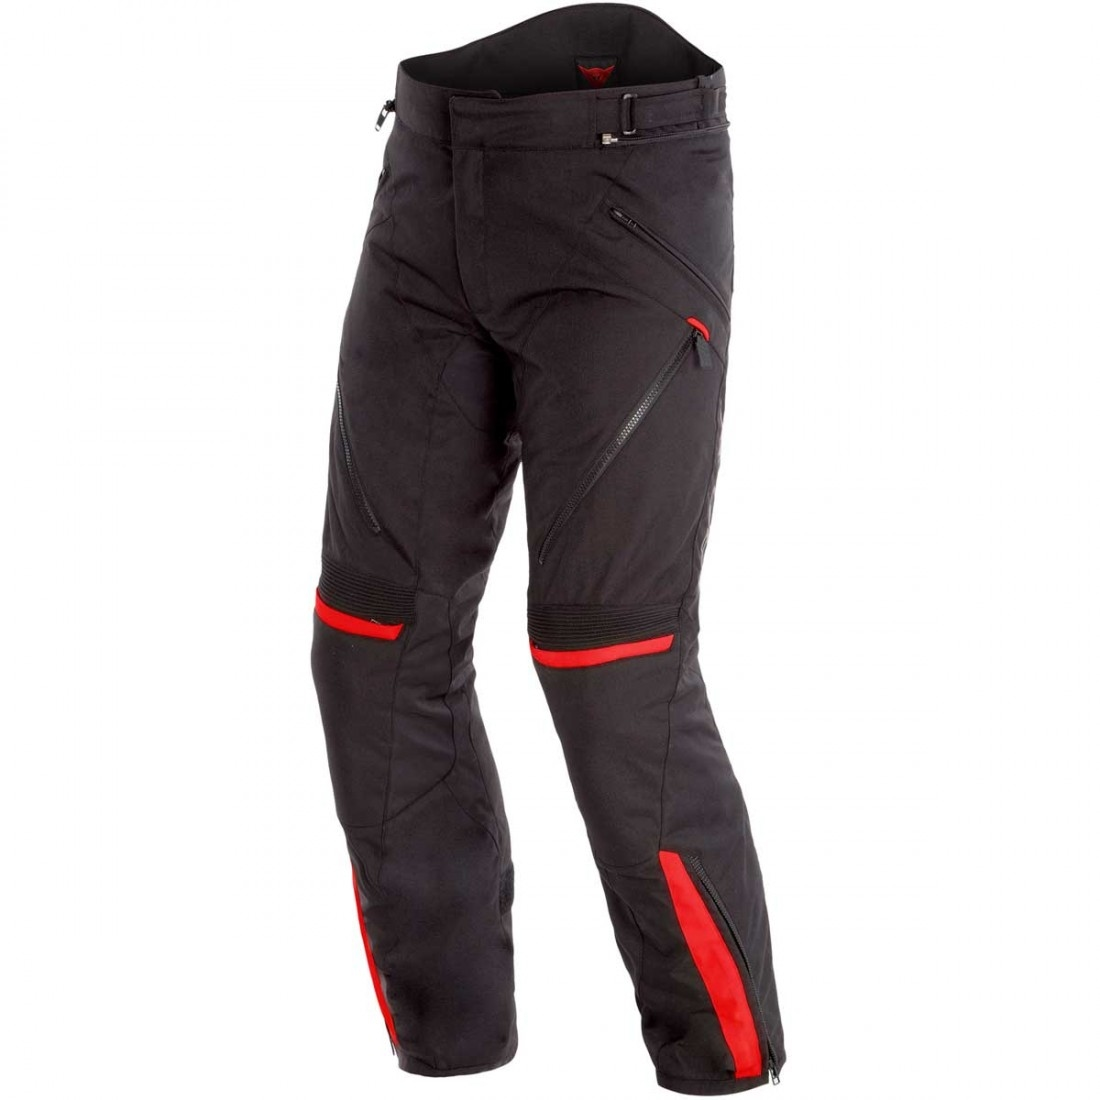 Ropa invierno carretera Dainese-tempest_2_d_dry_black_black_tour_red_00a-0-M-08822521-xlarge